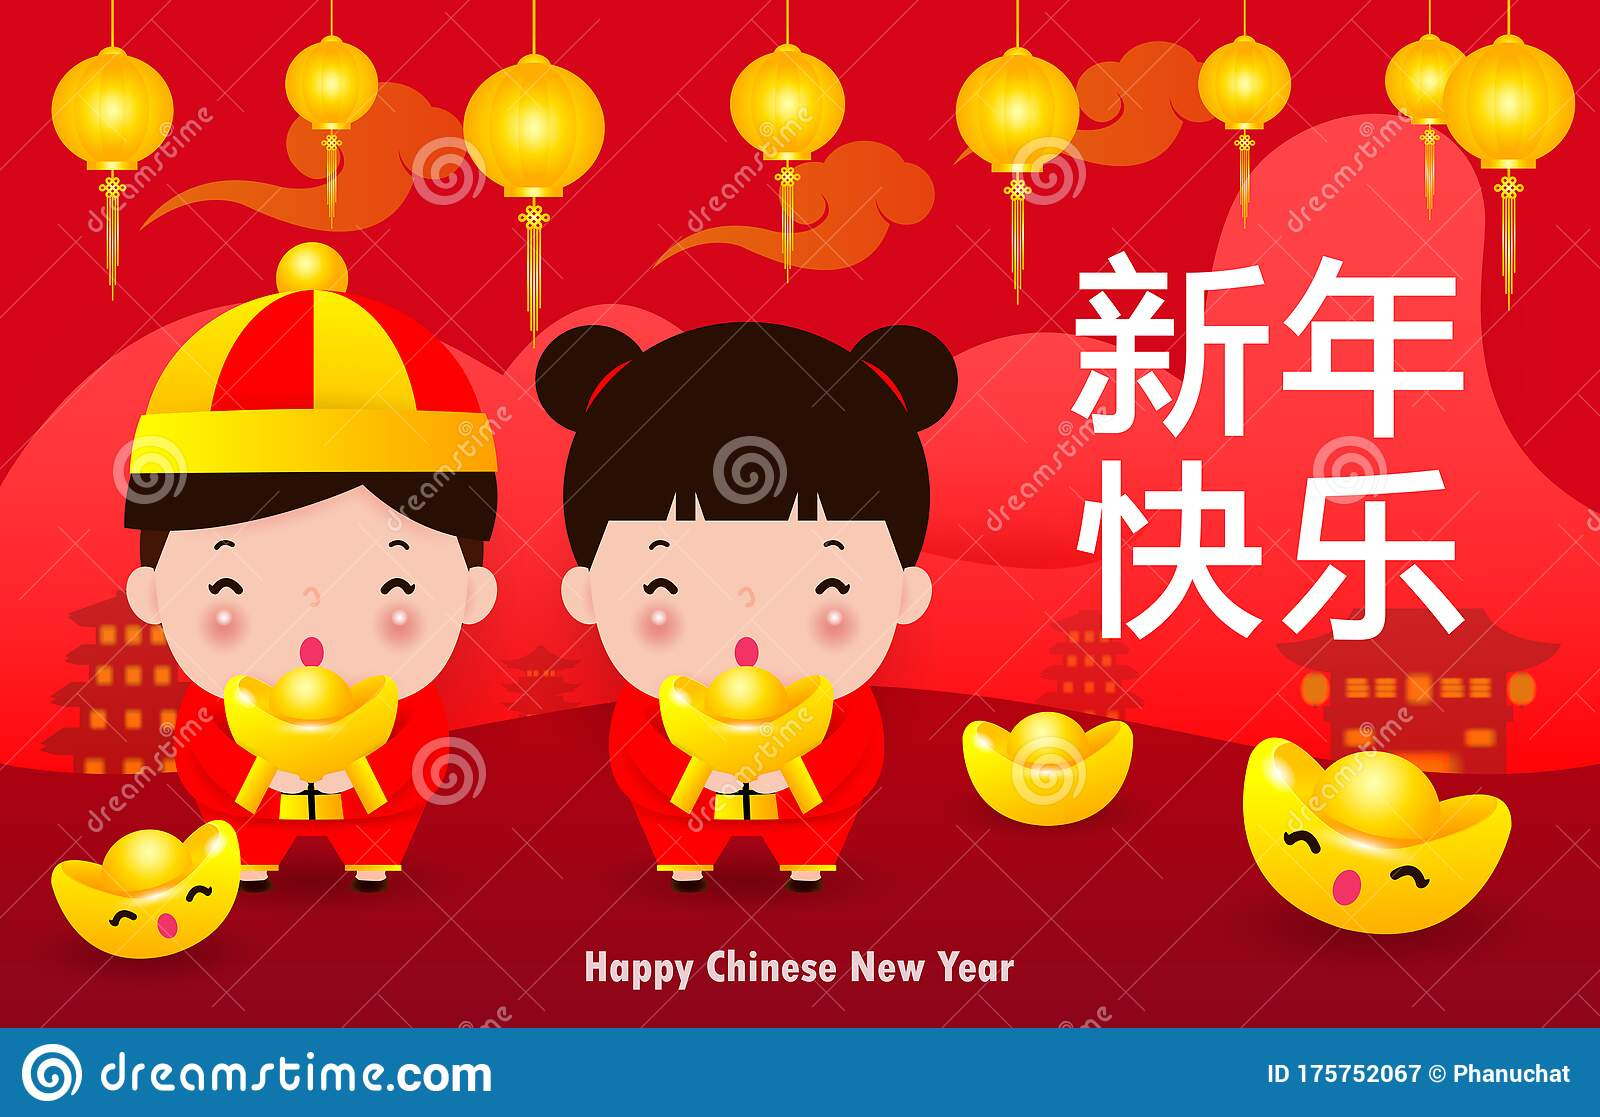 Happy Chinese New Year 2021 Greeting Card Chinese Kids ...